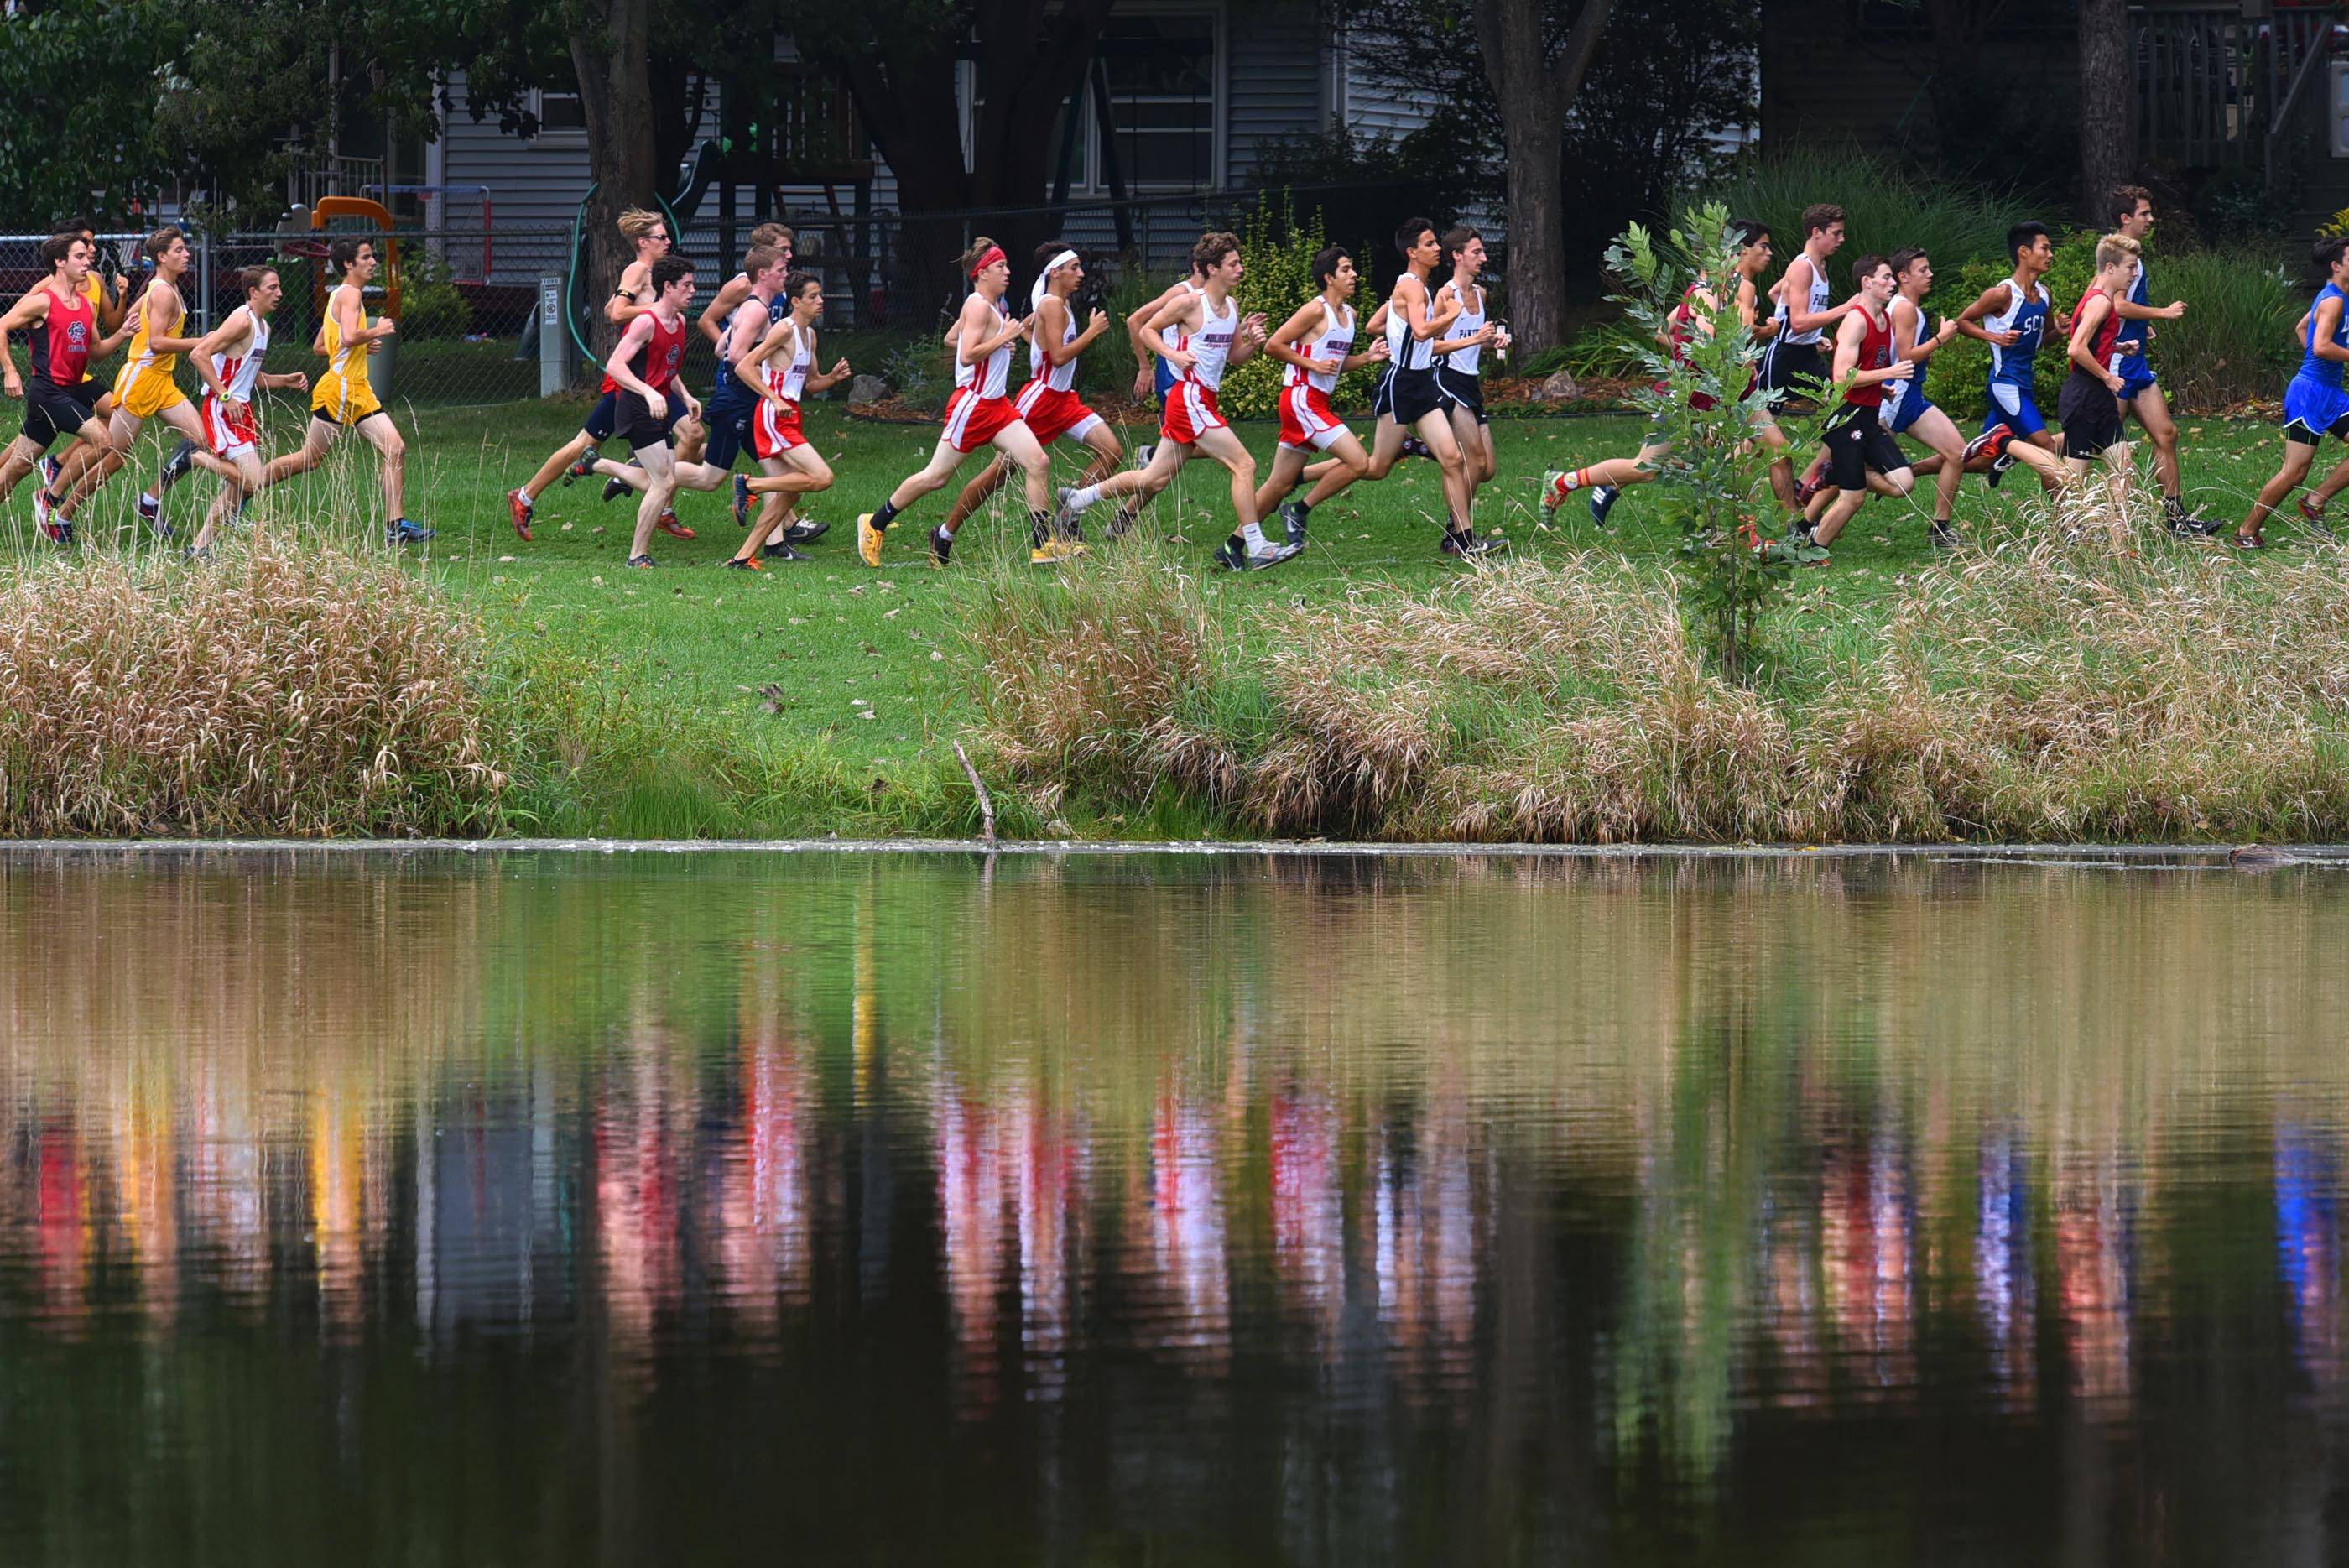 Runners compete along the edge of a pond at Sunrise Park in the boys varsity race Saturday at the Bartlett cross-country invitational.